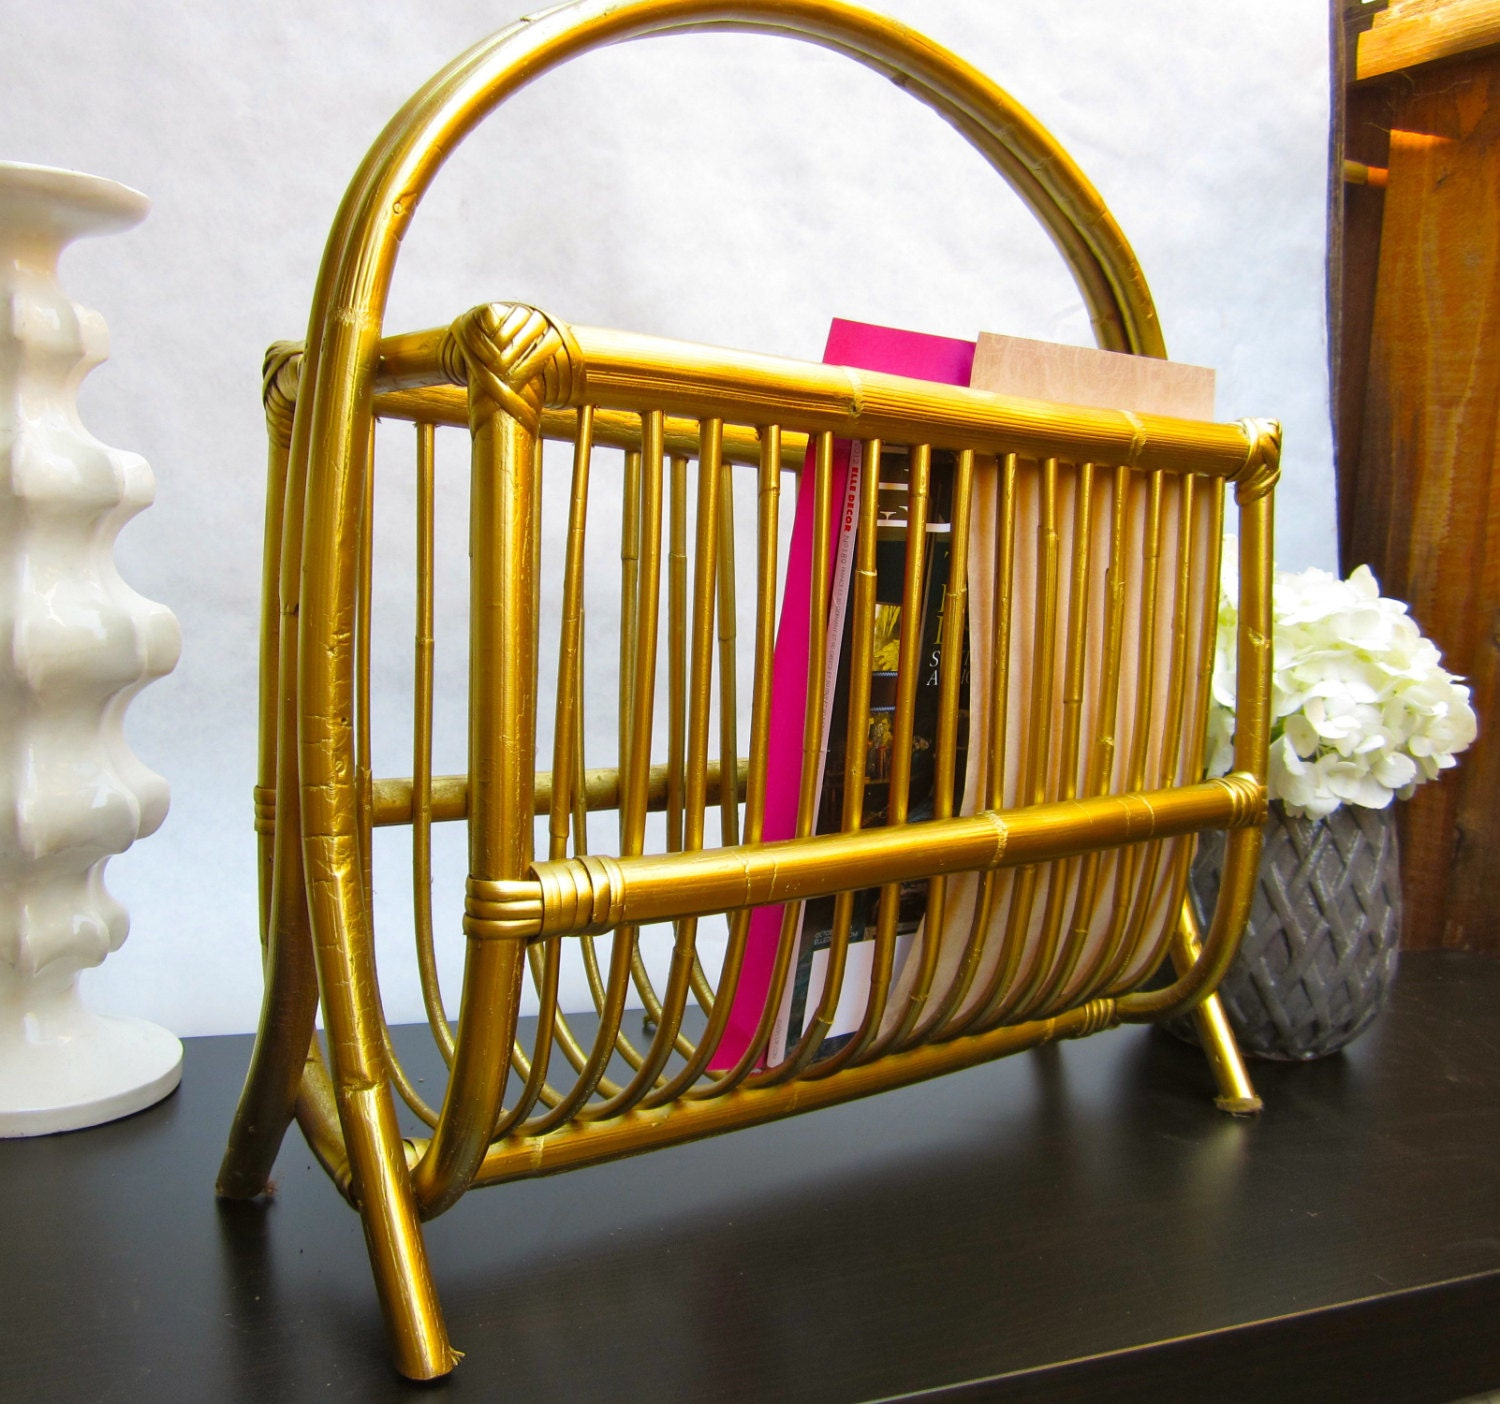 Gold Bamboo Magazine Rack Vintage - Mad Men - Retro Mid Century Gold Kitch 1950's 1960's